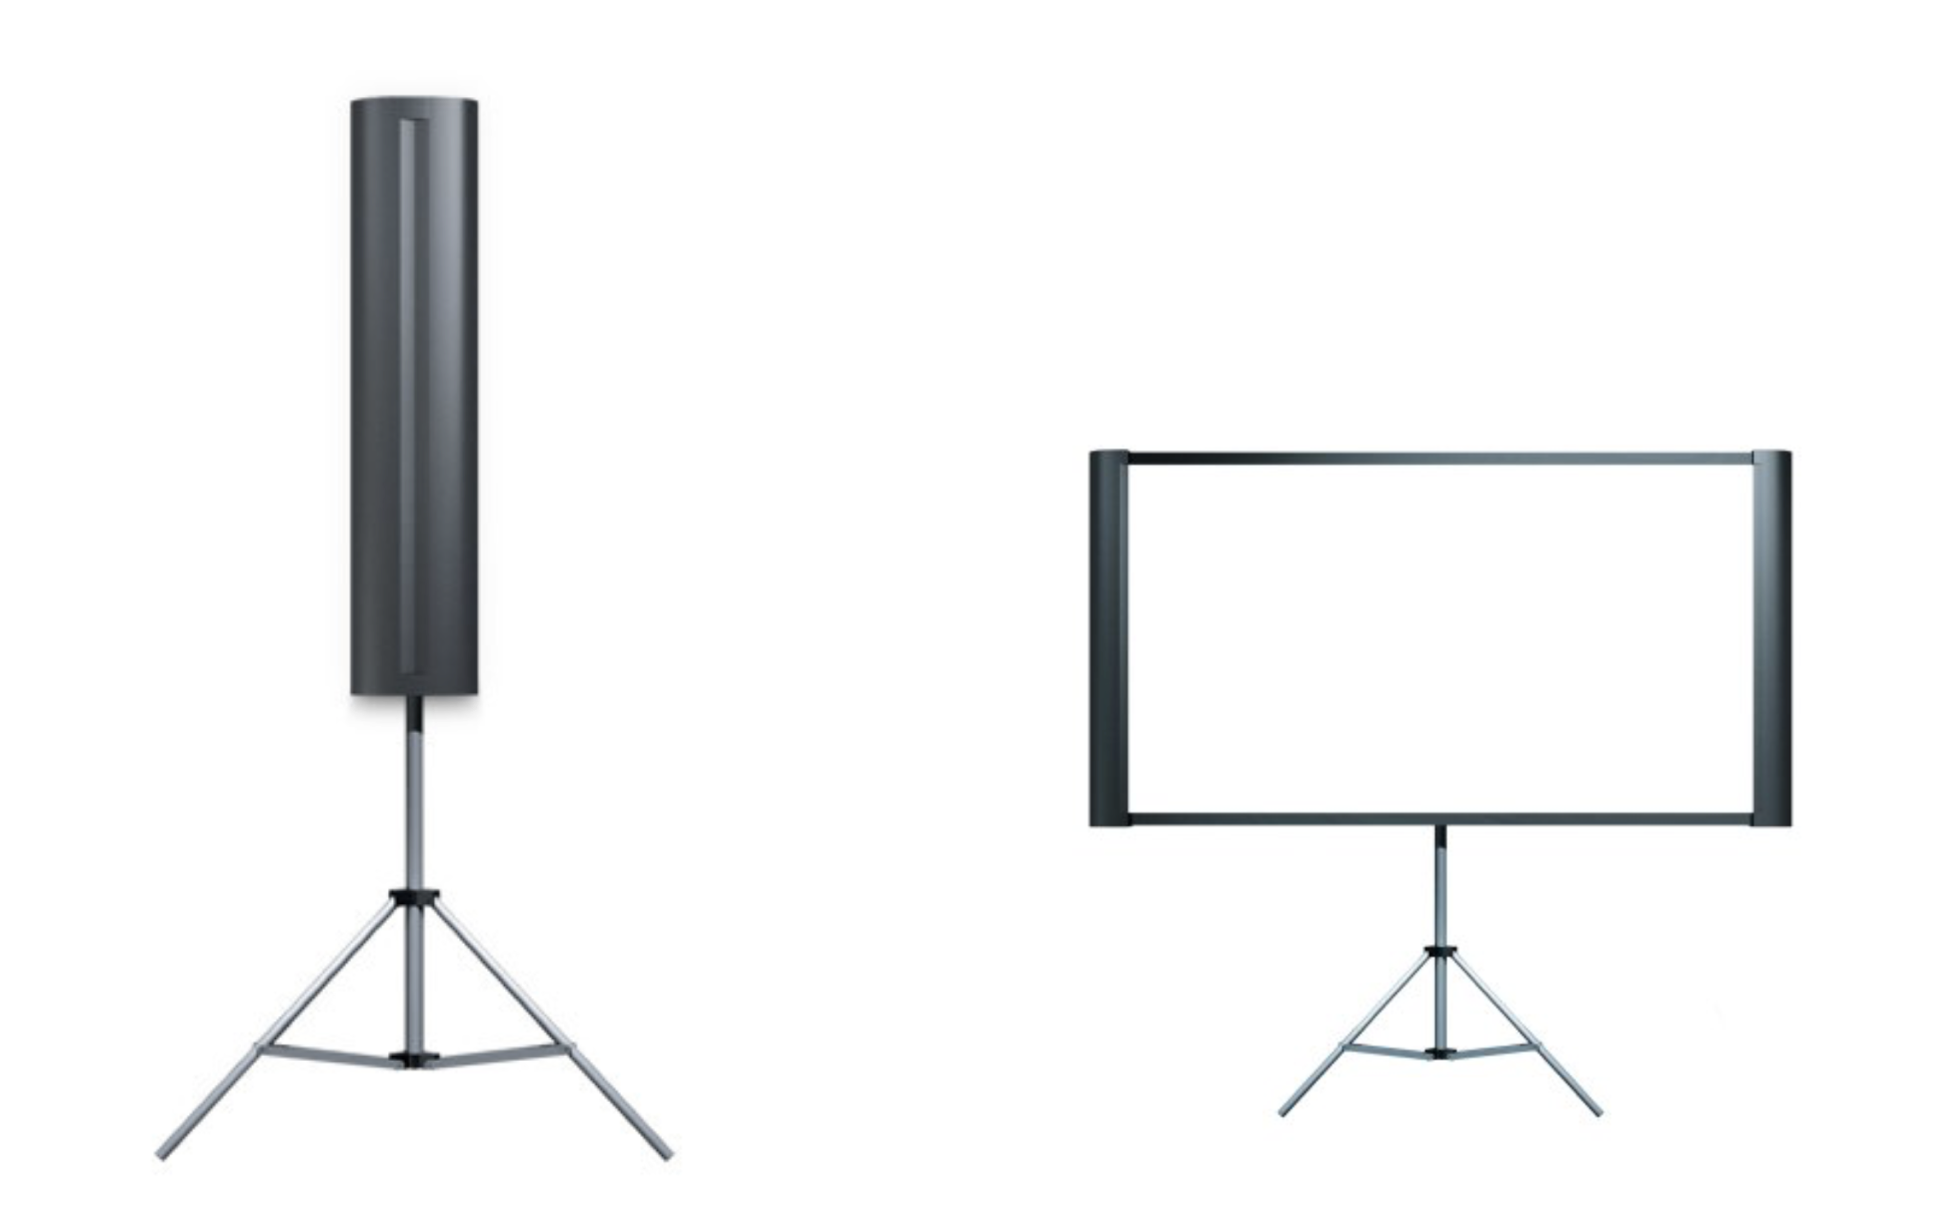 Screens - In addition to having your own projector, you need a portable screen--one you can carry and set up yourself. Most courtroom screens are located too far from the jury box to be seen effectively. Have the option of positioning your own screen strategically. Here are the basic features to look for:* Portability* Flexibility* Lightweight* Pictured here is an Epson duet 80-inch dual aspect projection ratio screen for just $120. It meets all of the criteria outlined above, and weighs about 7 pounds.